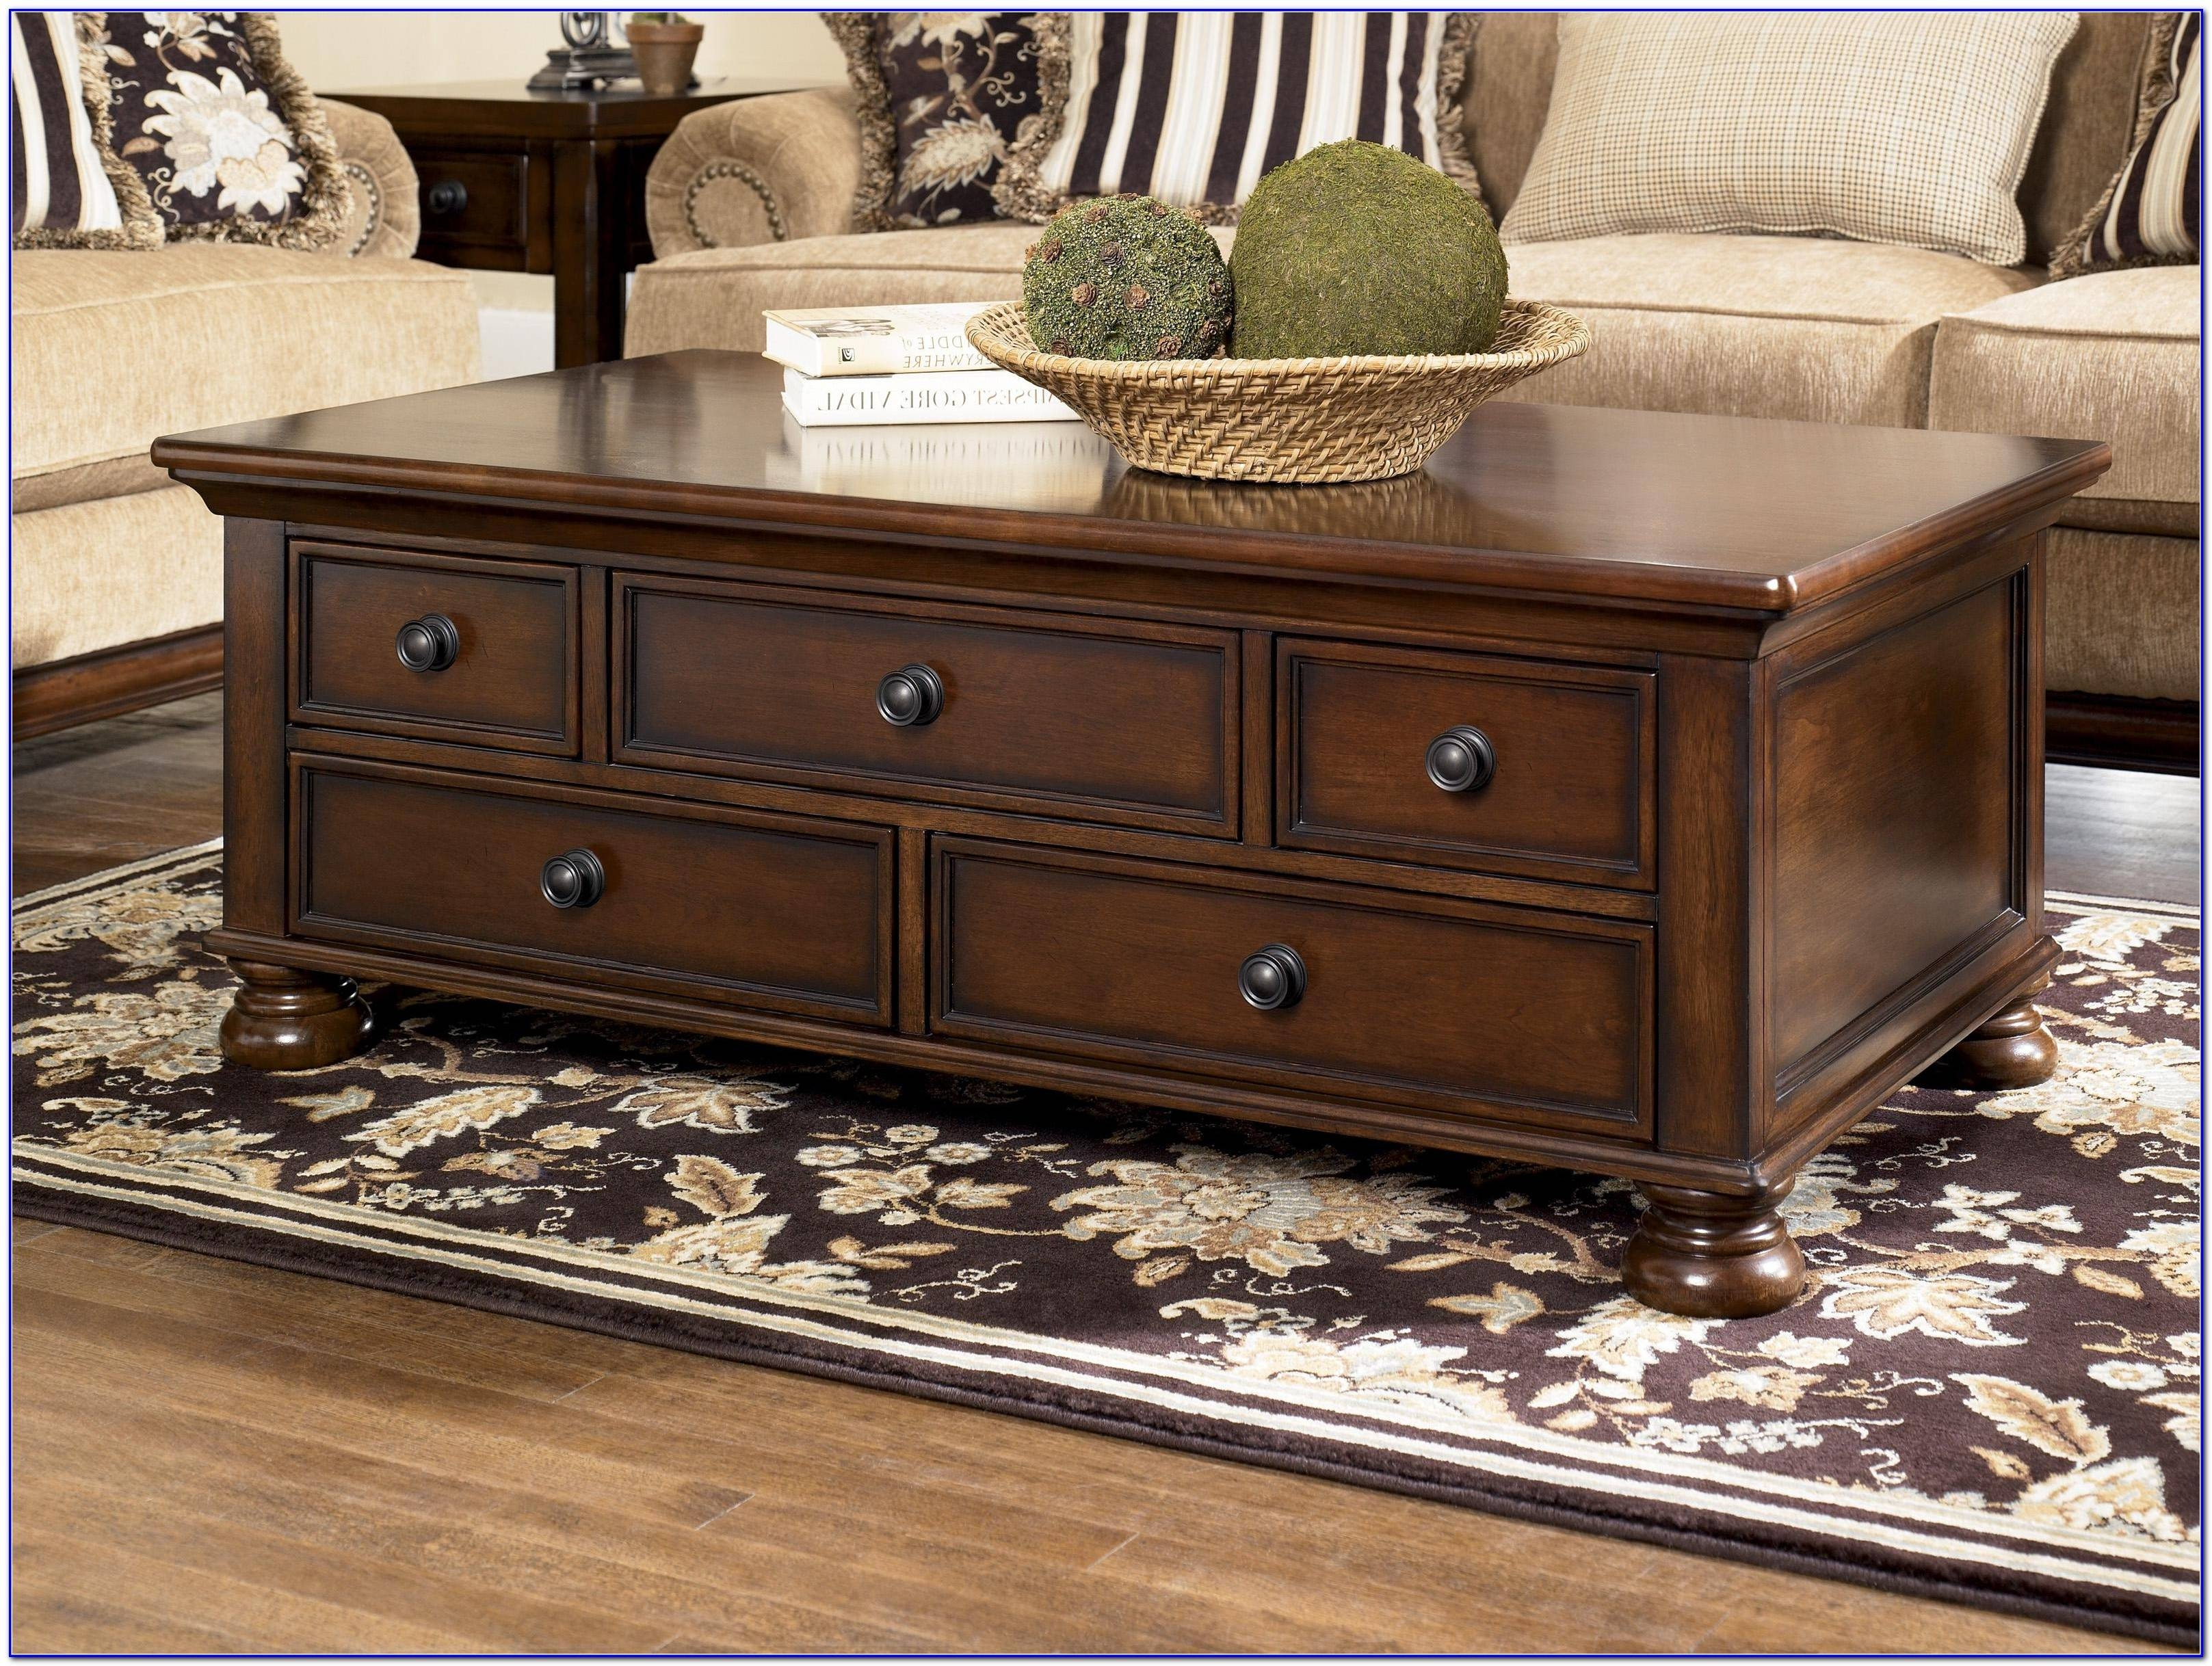 Distressed Dark Wood Coffee Table Modern Coffee Tables Cream with Big Square Coffee Tables (Image 21 of 30)